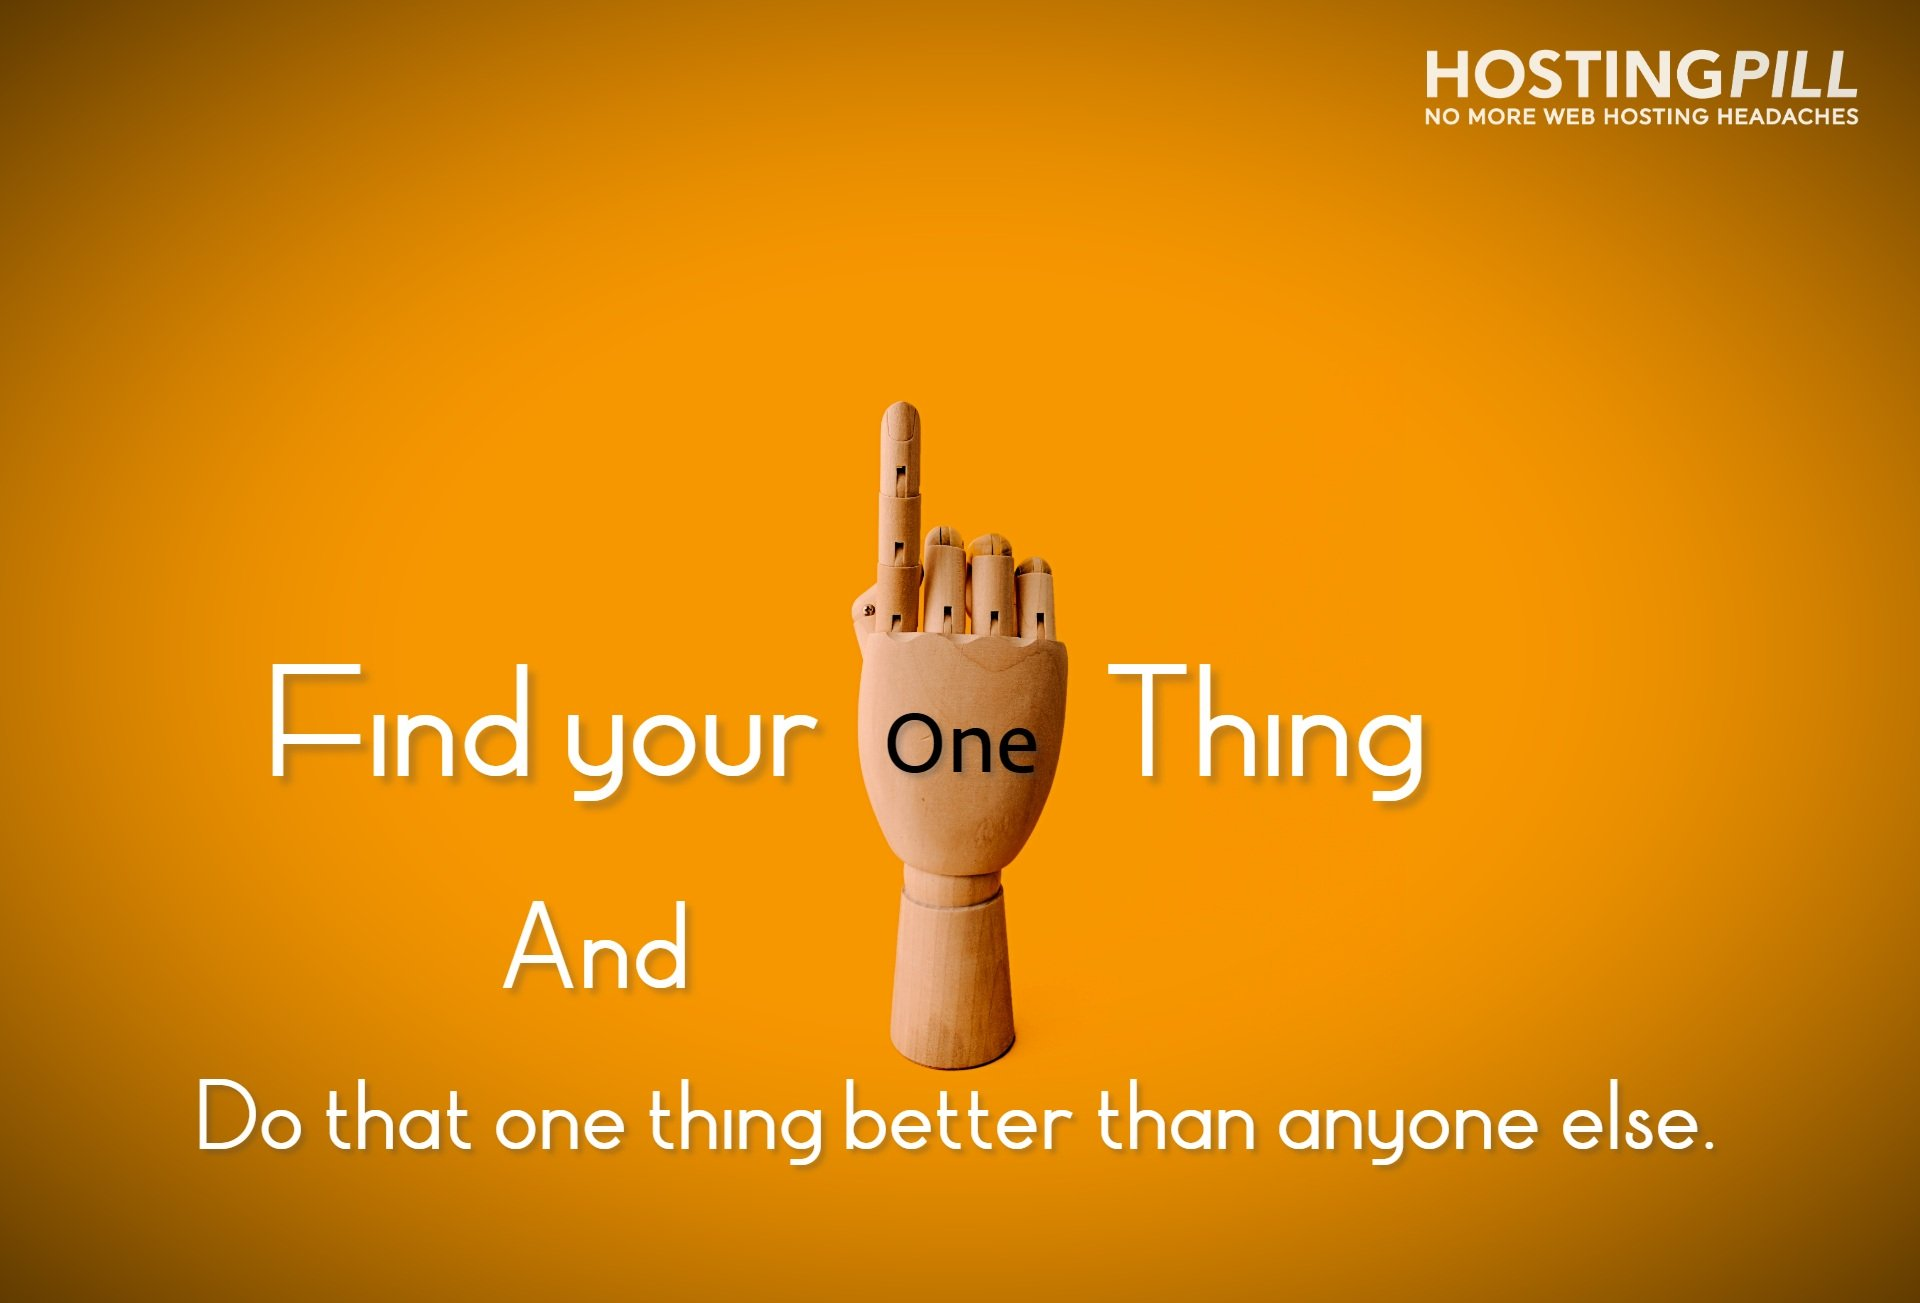 Find your one thing. And do that one thing better than anyone else.